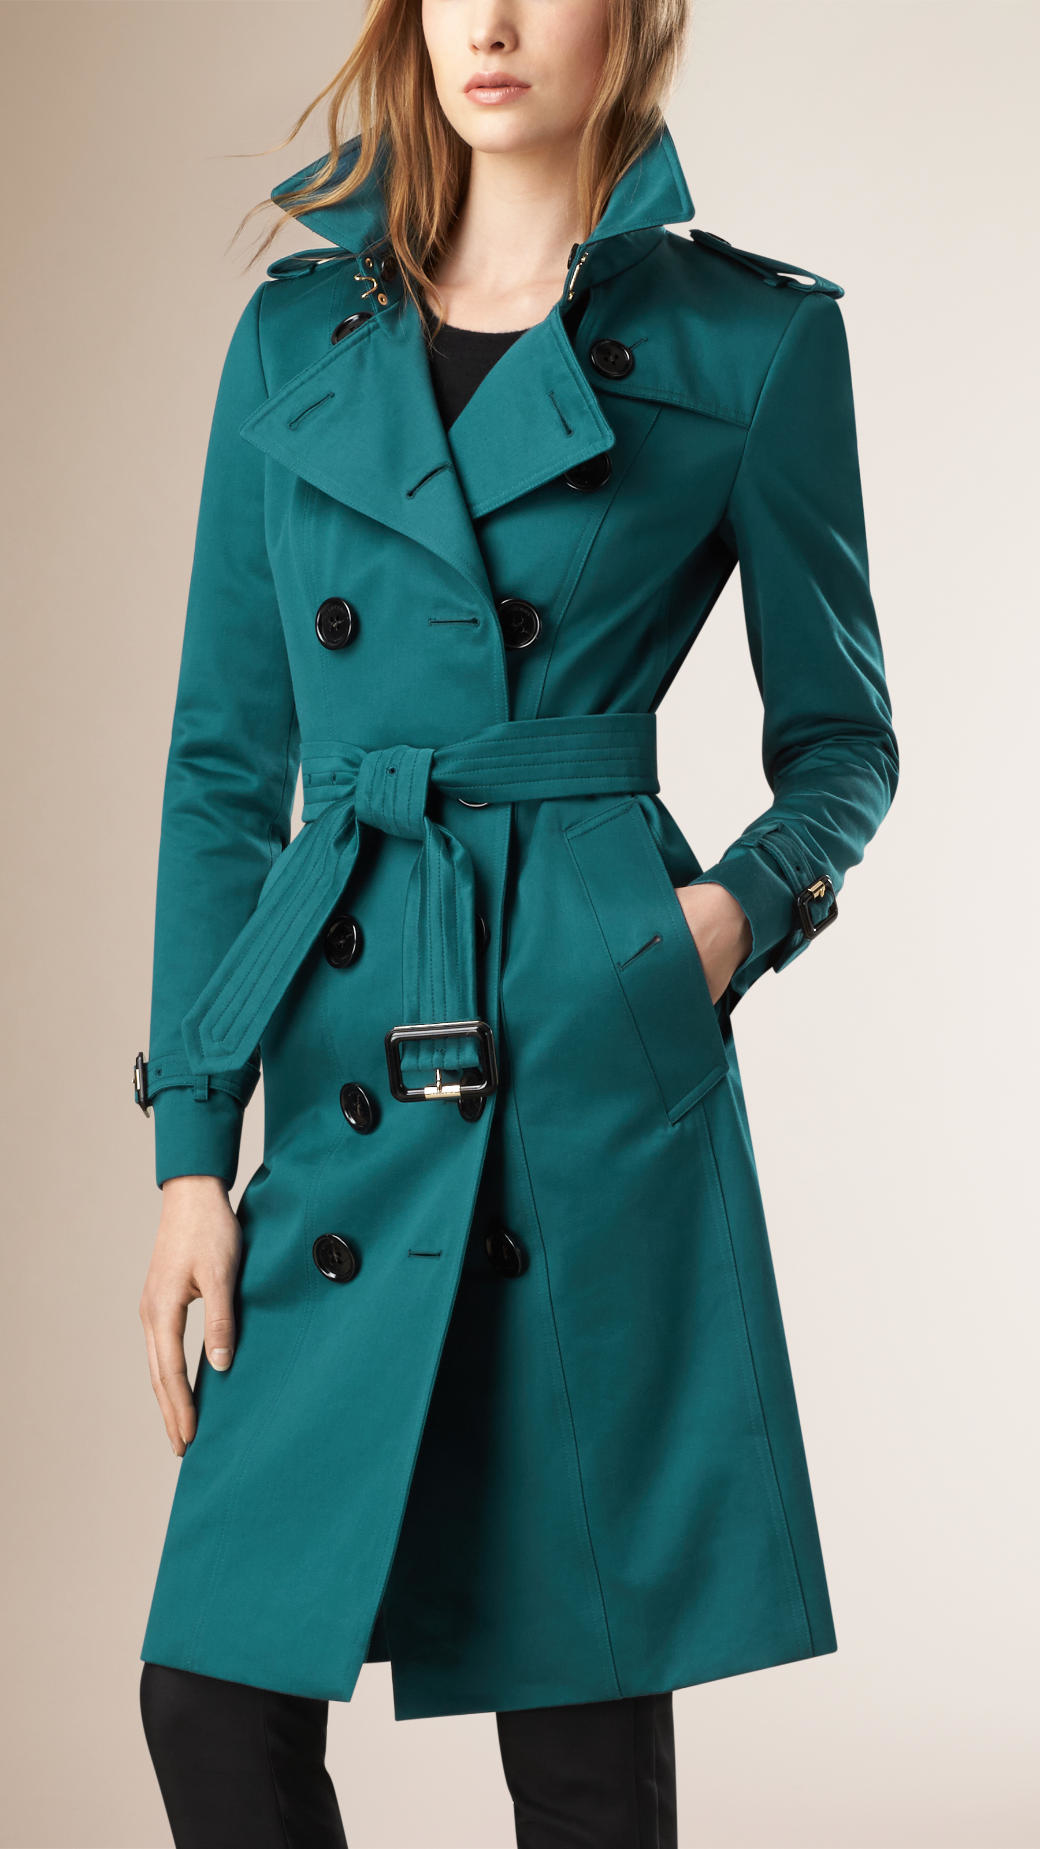 A Blue trench coat would be the perfect trench coat for everybody, but since we believe in made-to-measure we give you the possibility to adjust the trench coat to your likings. When the fabric and color are the right match for you, you can start adjusting the details, like .